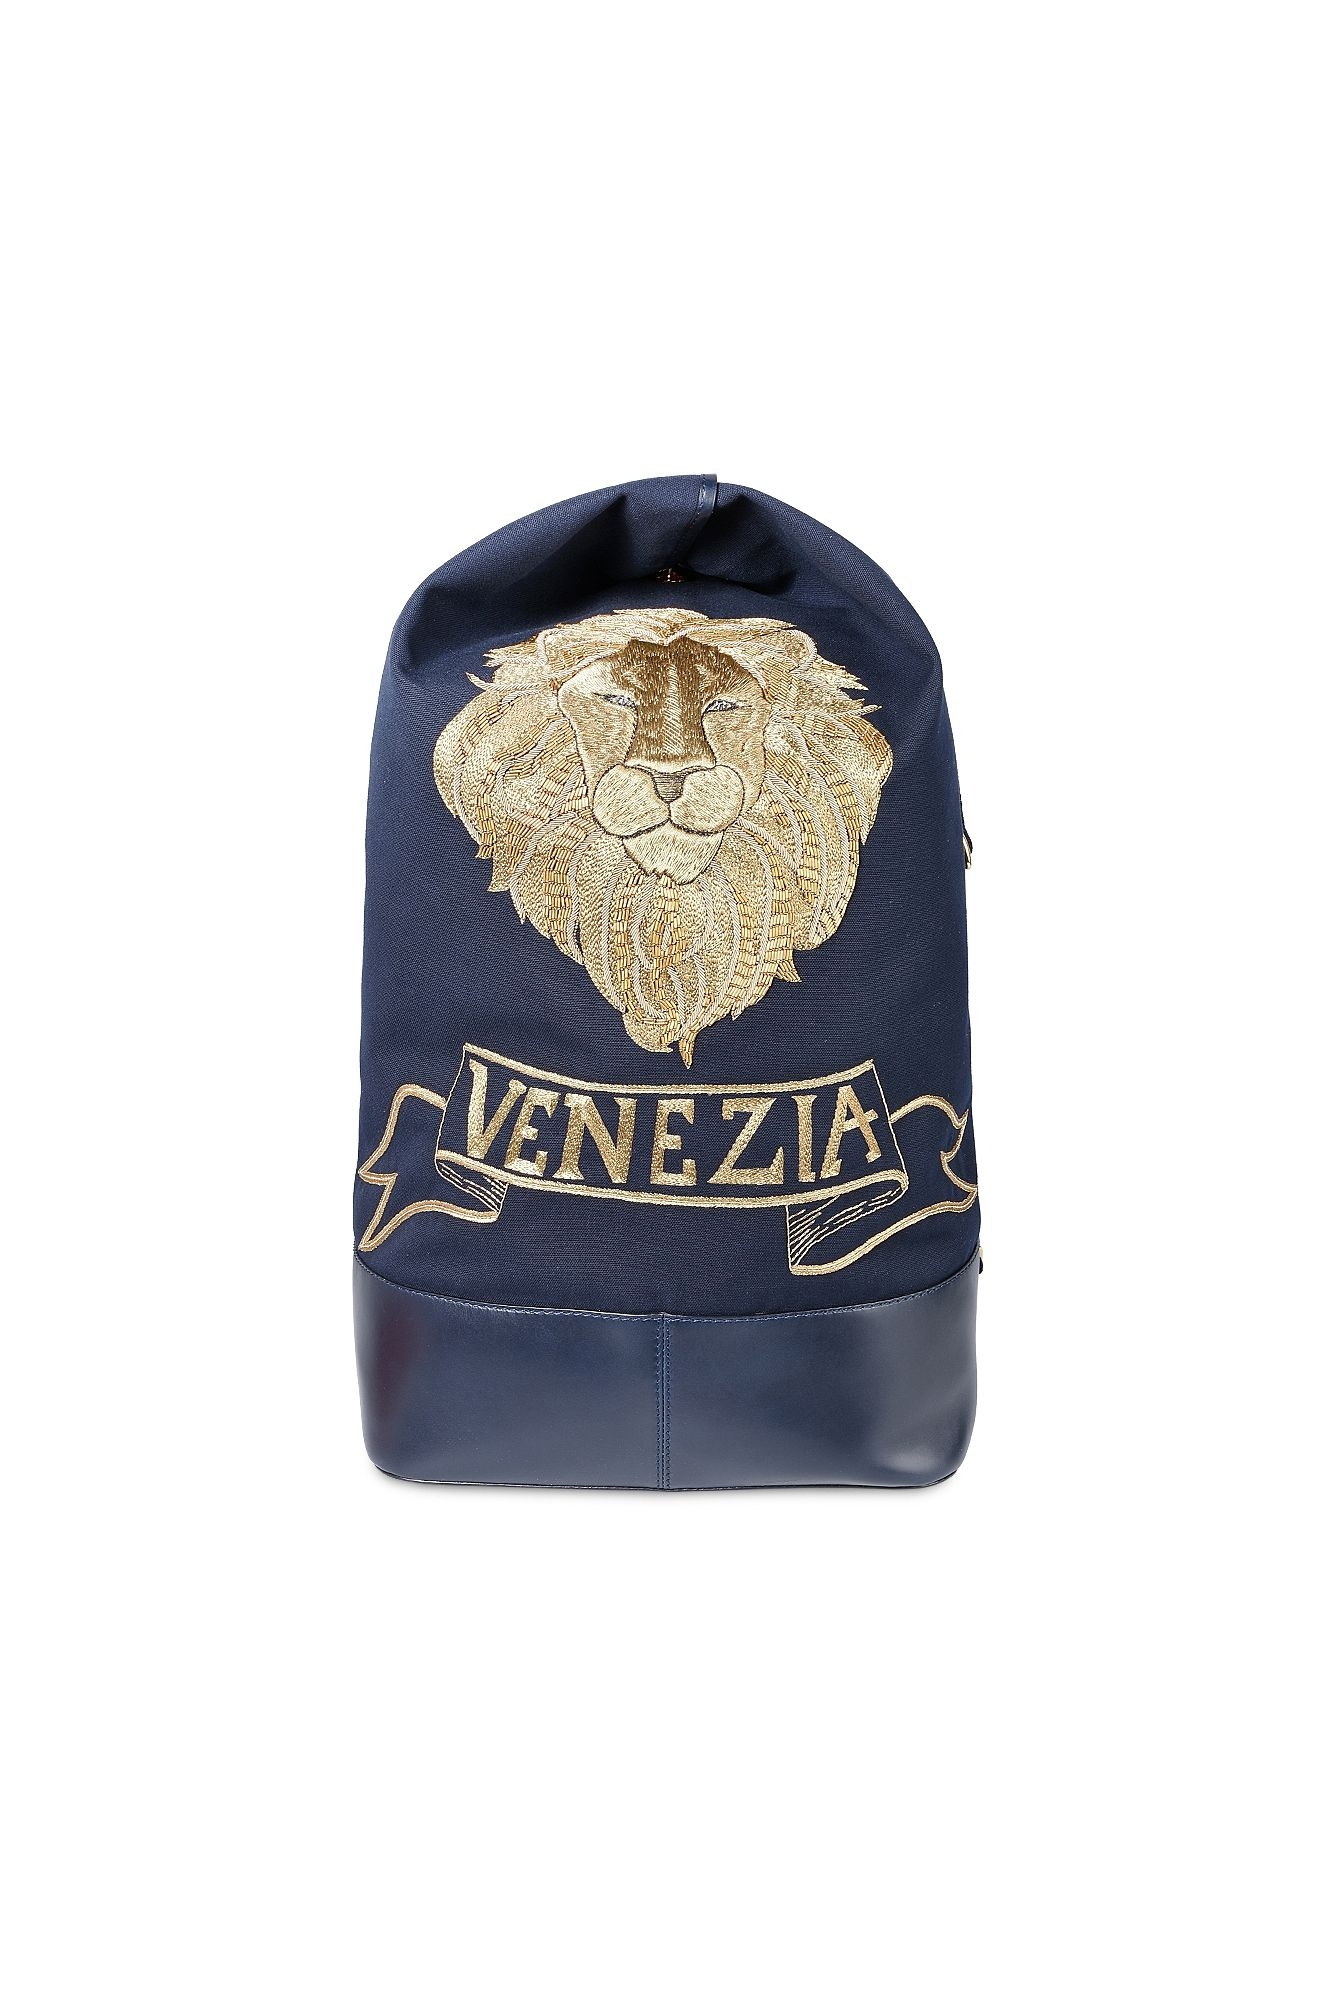 Maxi bag with gold lion